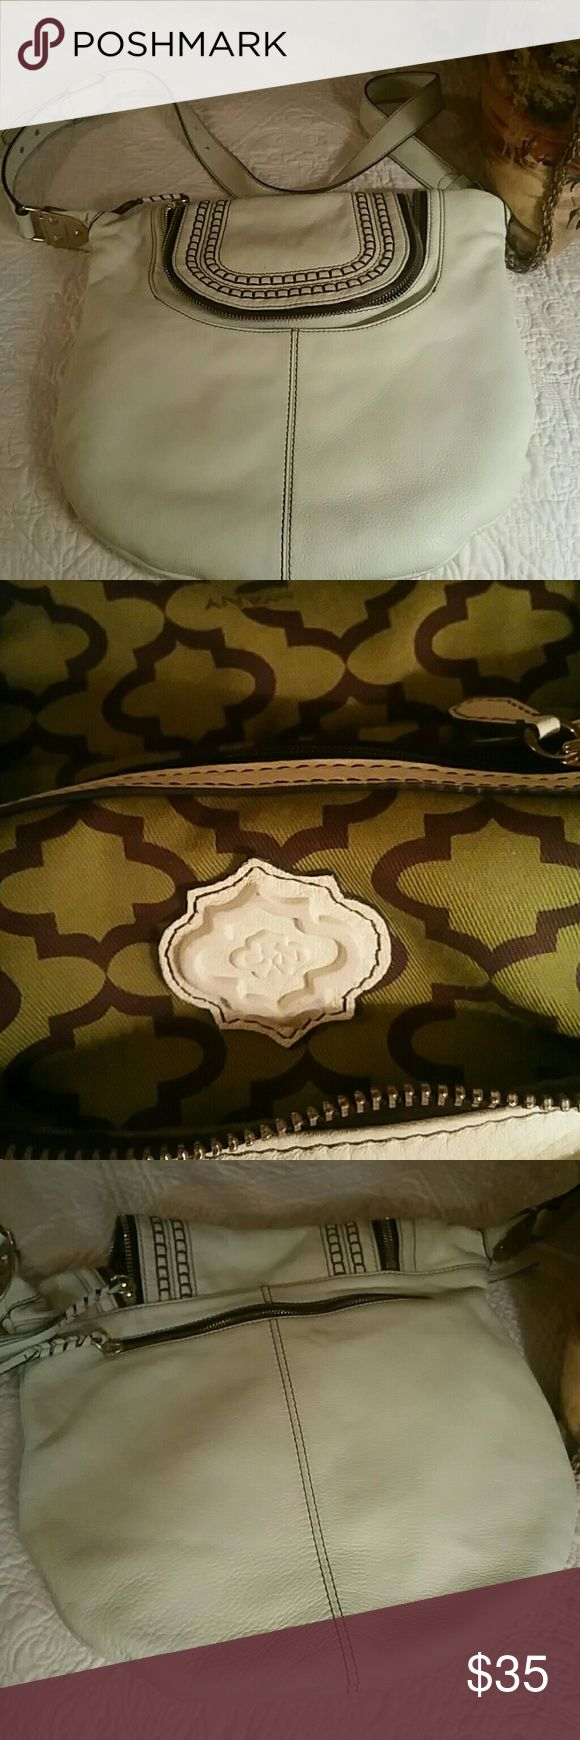 Oryany handbags in Cream with dark brown stitching Cream leather crossbody.  Perfect for summer.  Small scratch less than 1/4 of an inch on front.  Check out my pics.   Cannot even see it!  This bag came from the Neiman Marcus Outlet! oryany Bags Crossbody Bags